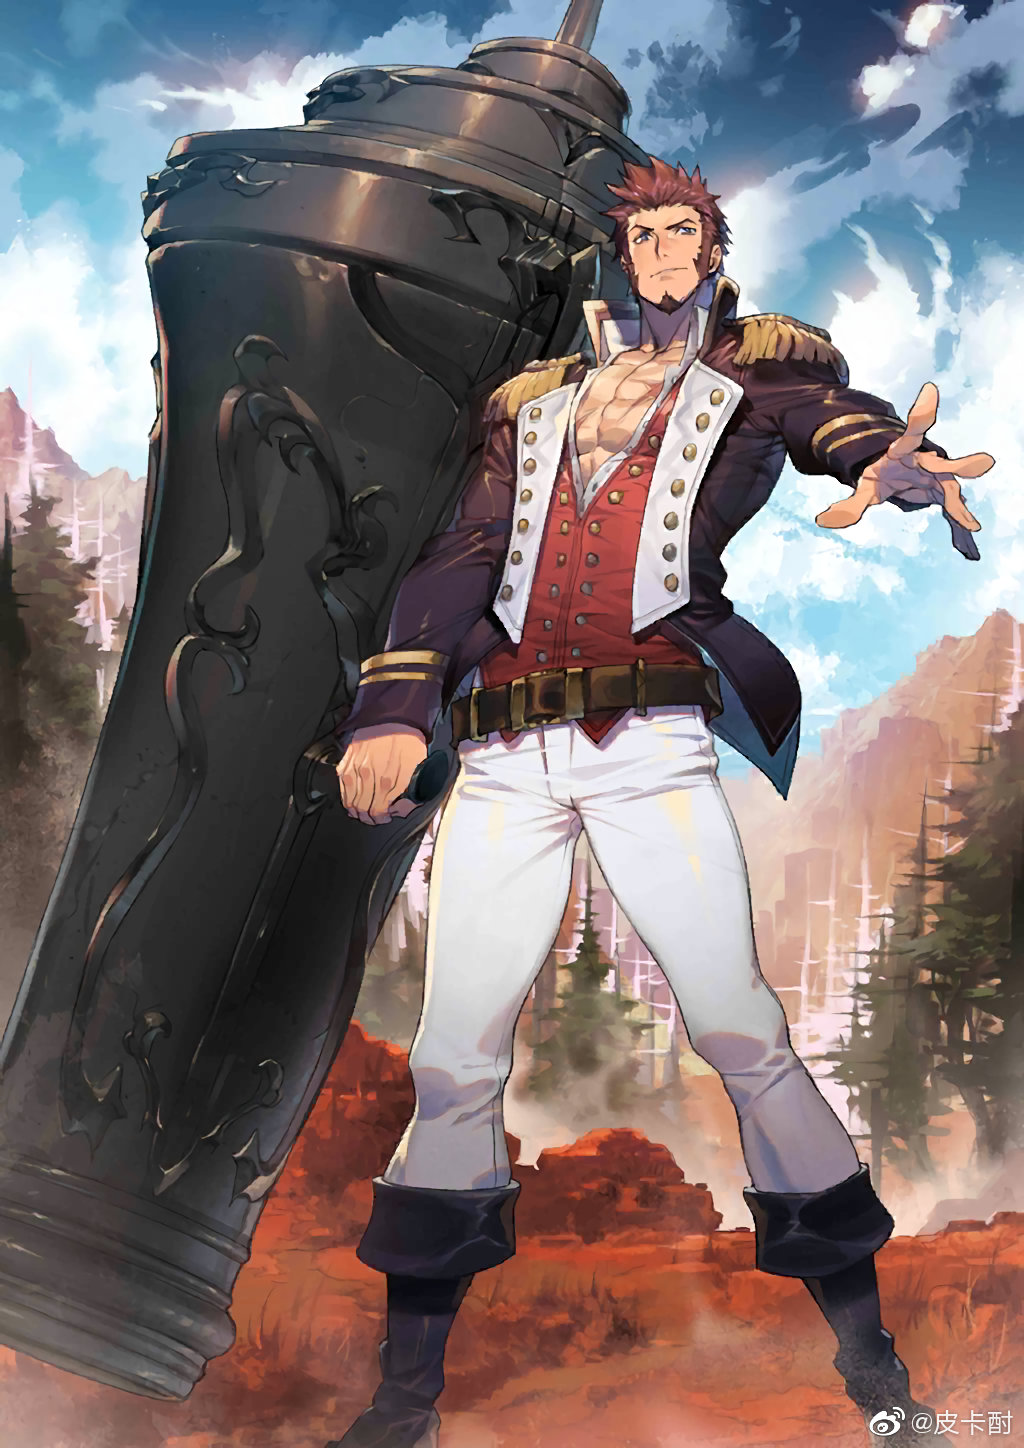 1boy bara beard belt blue_eyes boots brown_hair chest collared_jacket epaulettes facial_hair fate/grand_order fate_(series) full_body highres holding holding_weapon huge_weapon jacket long_sleeves looking_at_viewer male_focus military military_uniform mountain muscle napoleon_bonaparte_(fate/grand_order) official_art open_clothes open_jacket pants pectorals ryota-h scar sideburns sky solo standing thighs uniform weapon